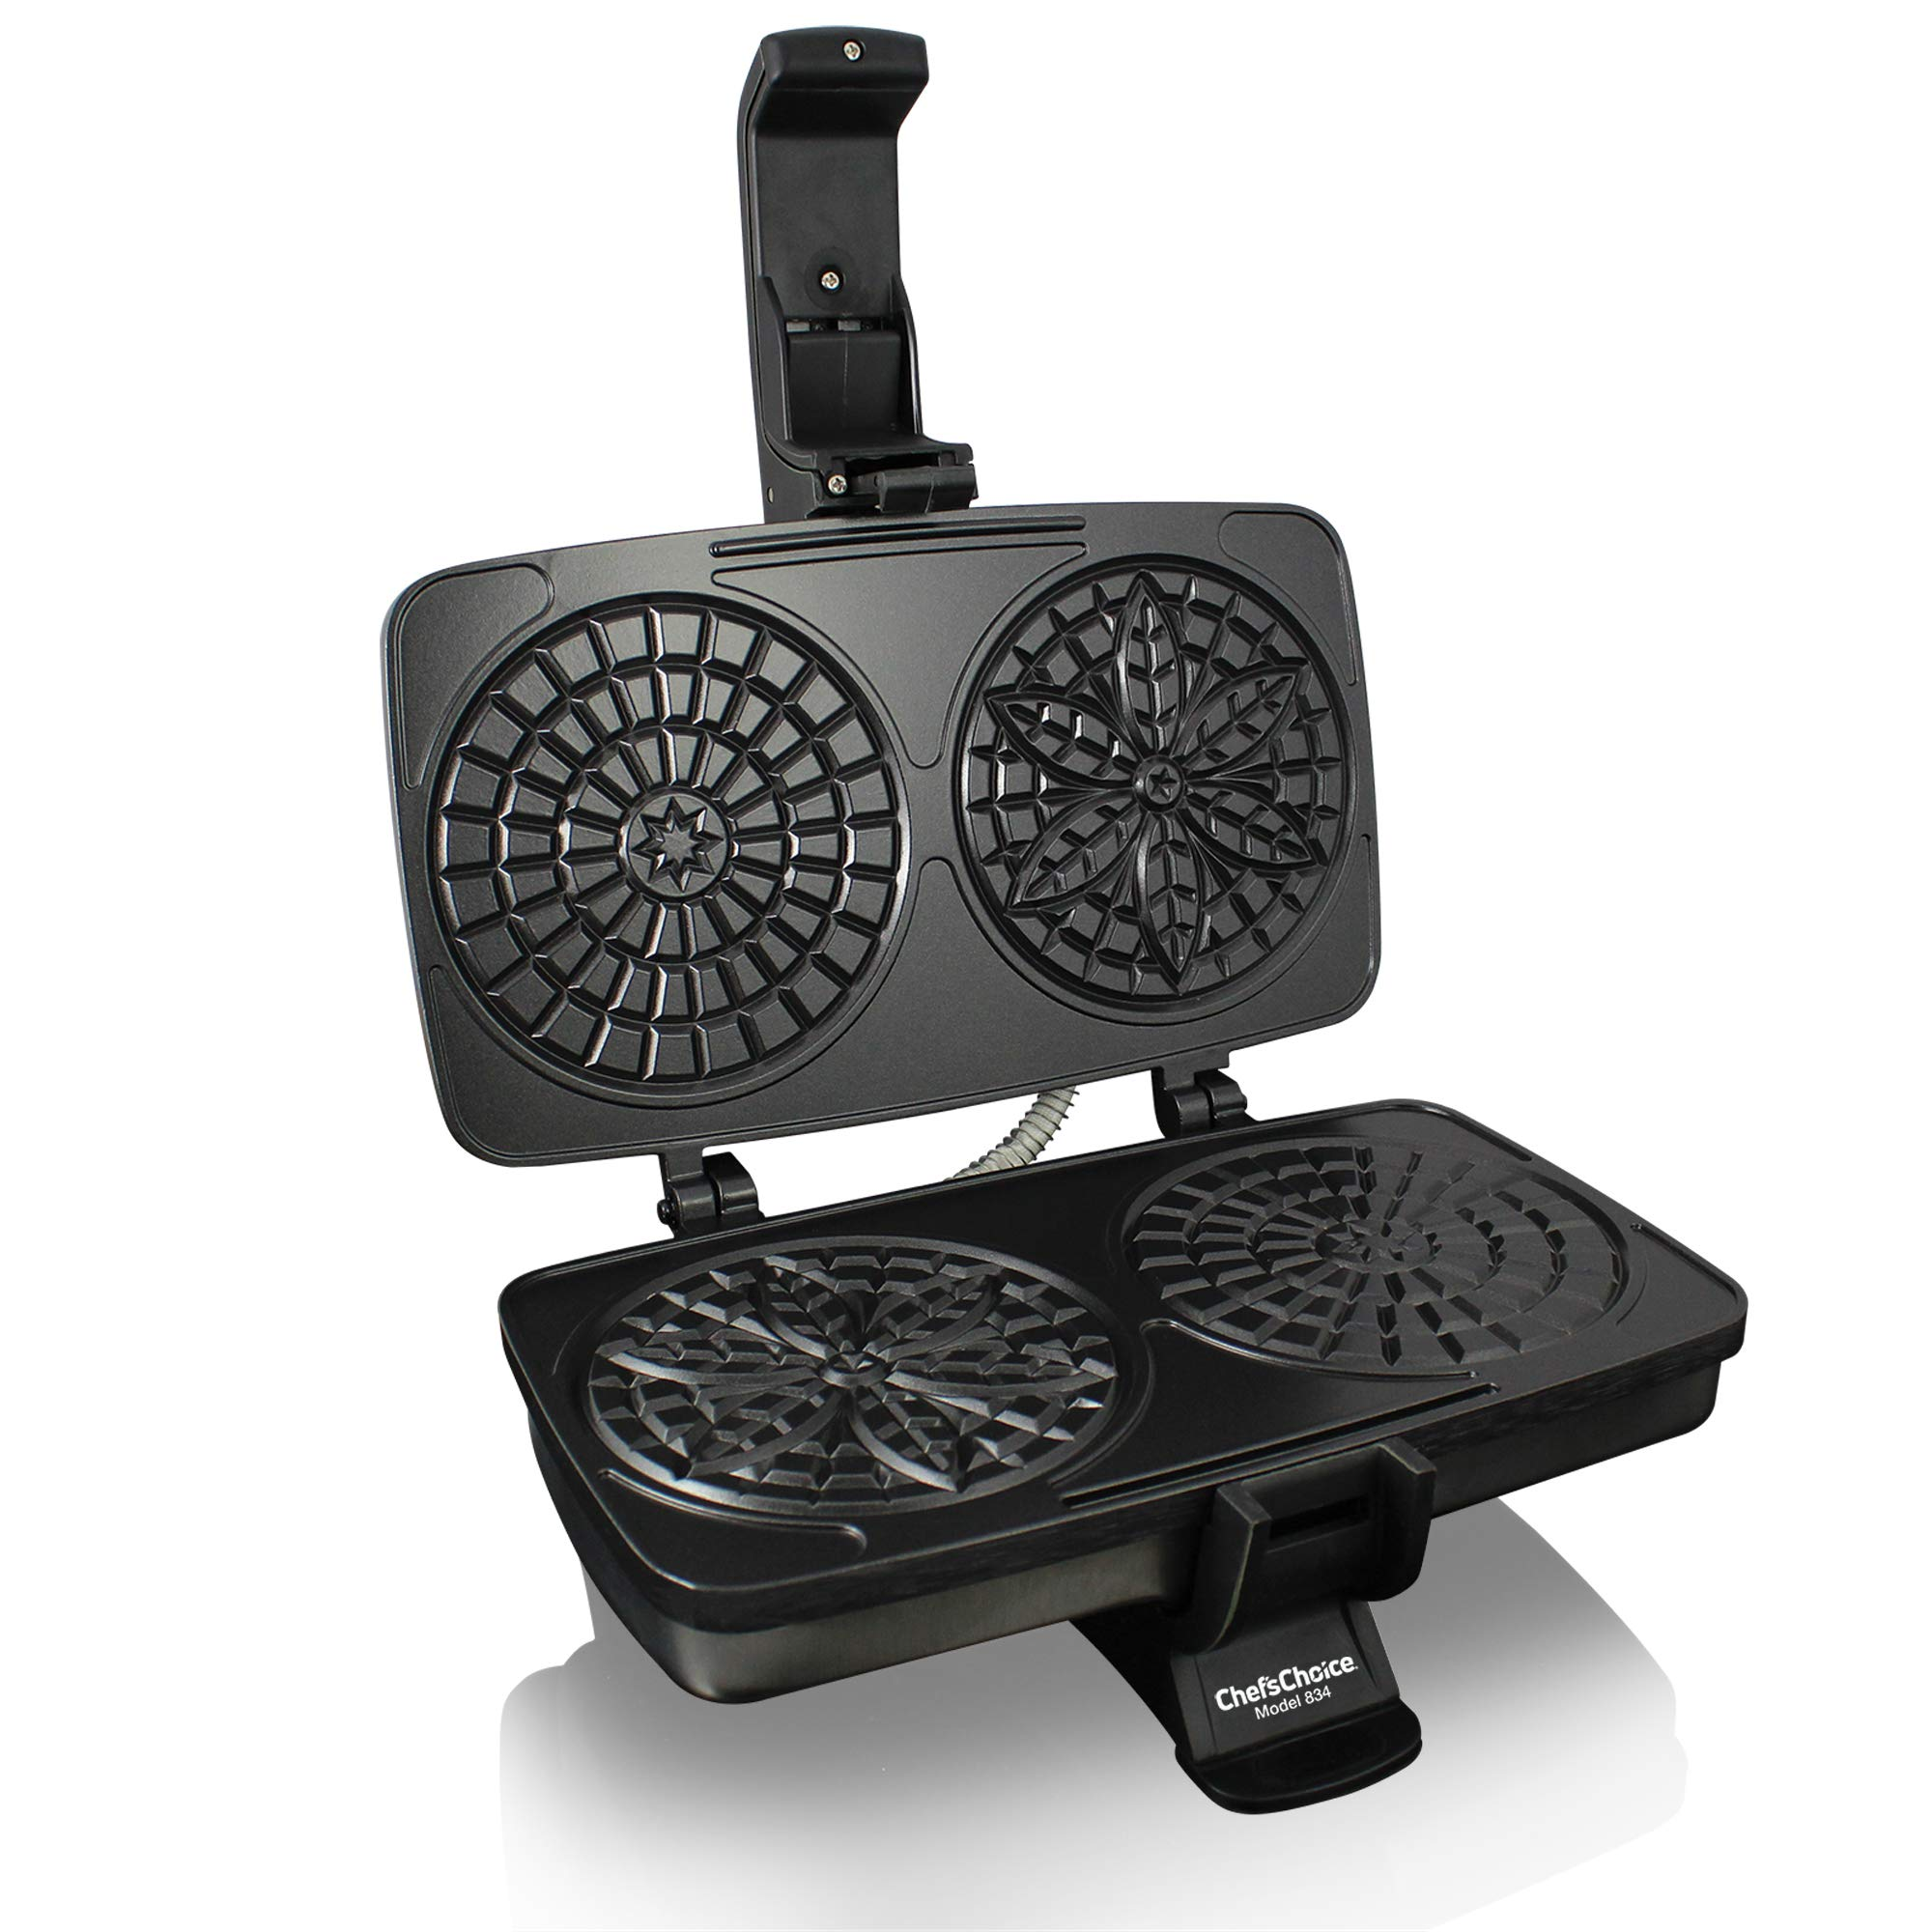 ChefsChoice PizzellePro Indicator Consistent Delicious